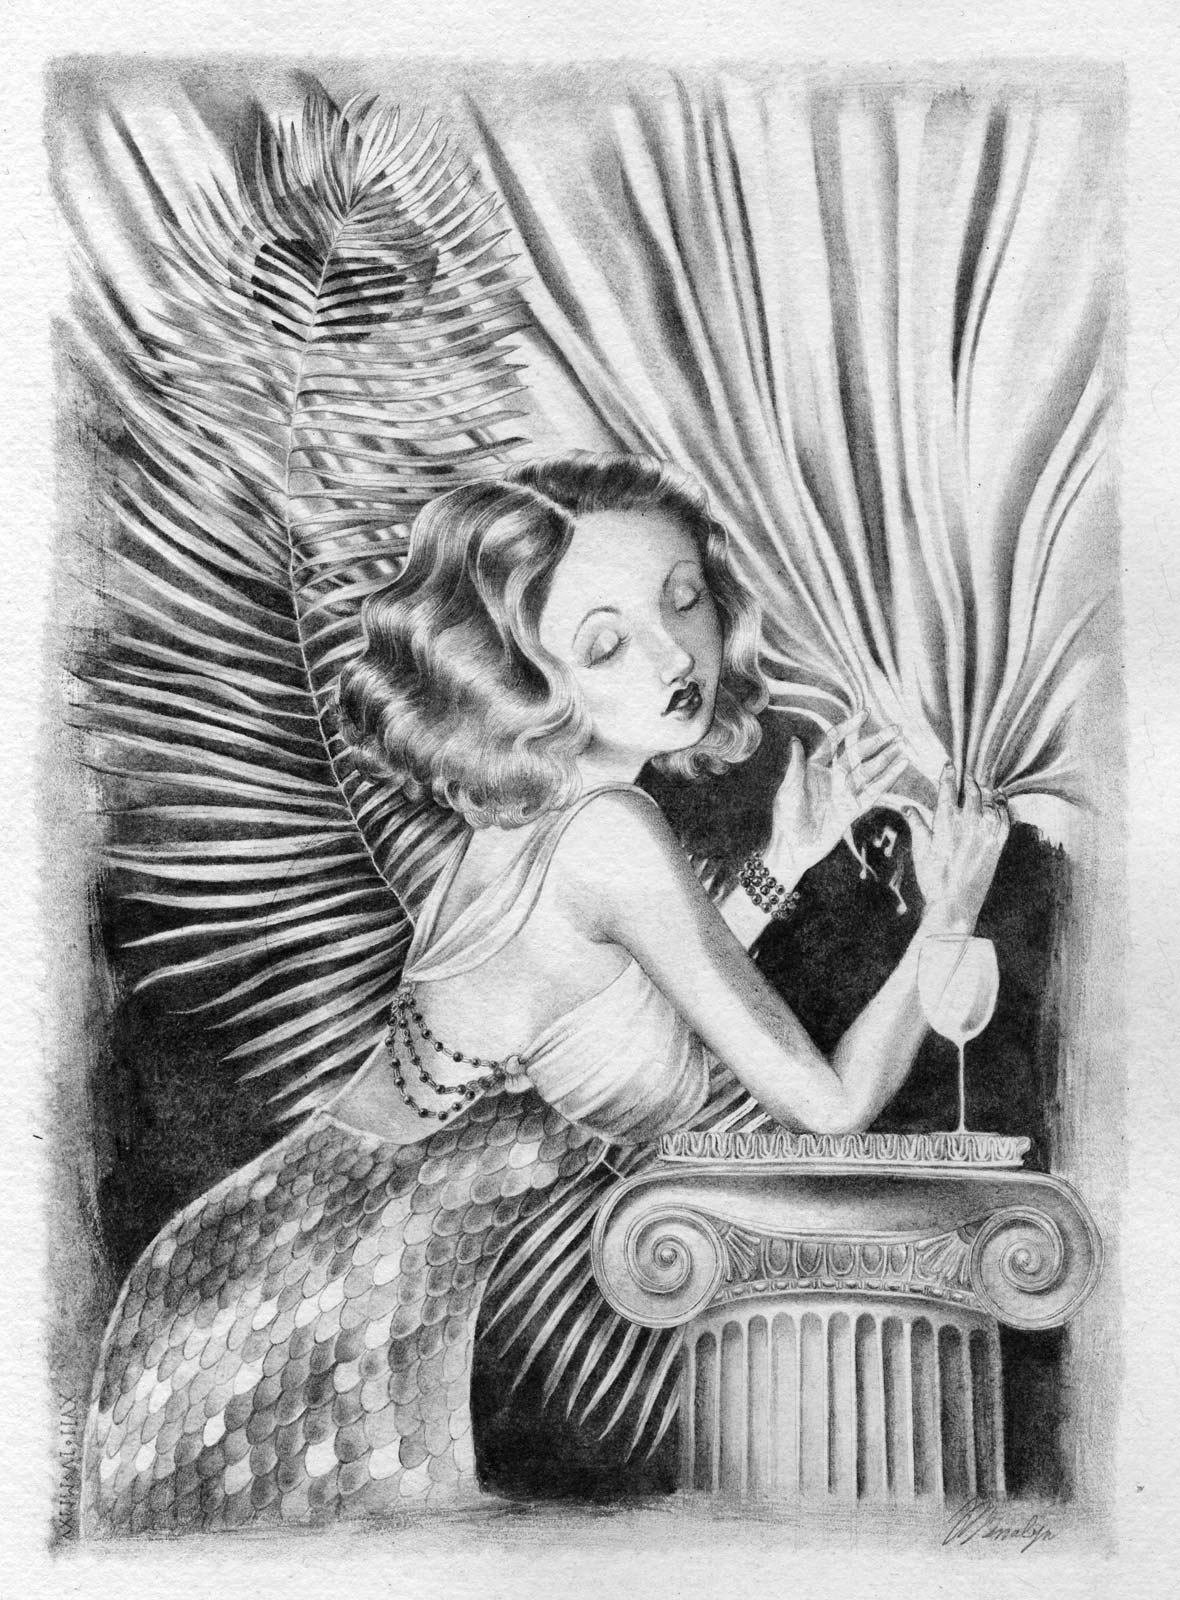 A Golden Age Hollywood actress in a gown with scales toying with a silver curtain like a mermaid playing the harp.